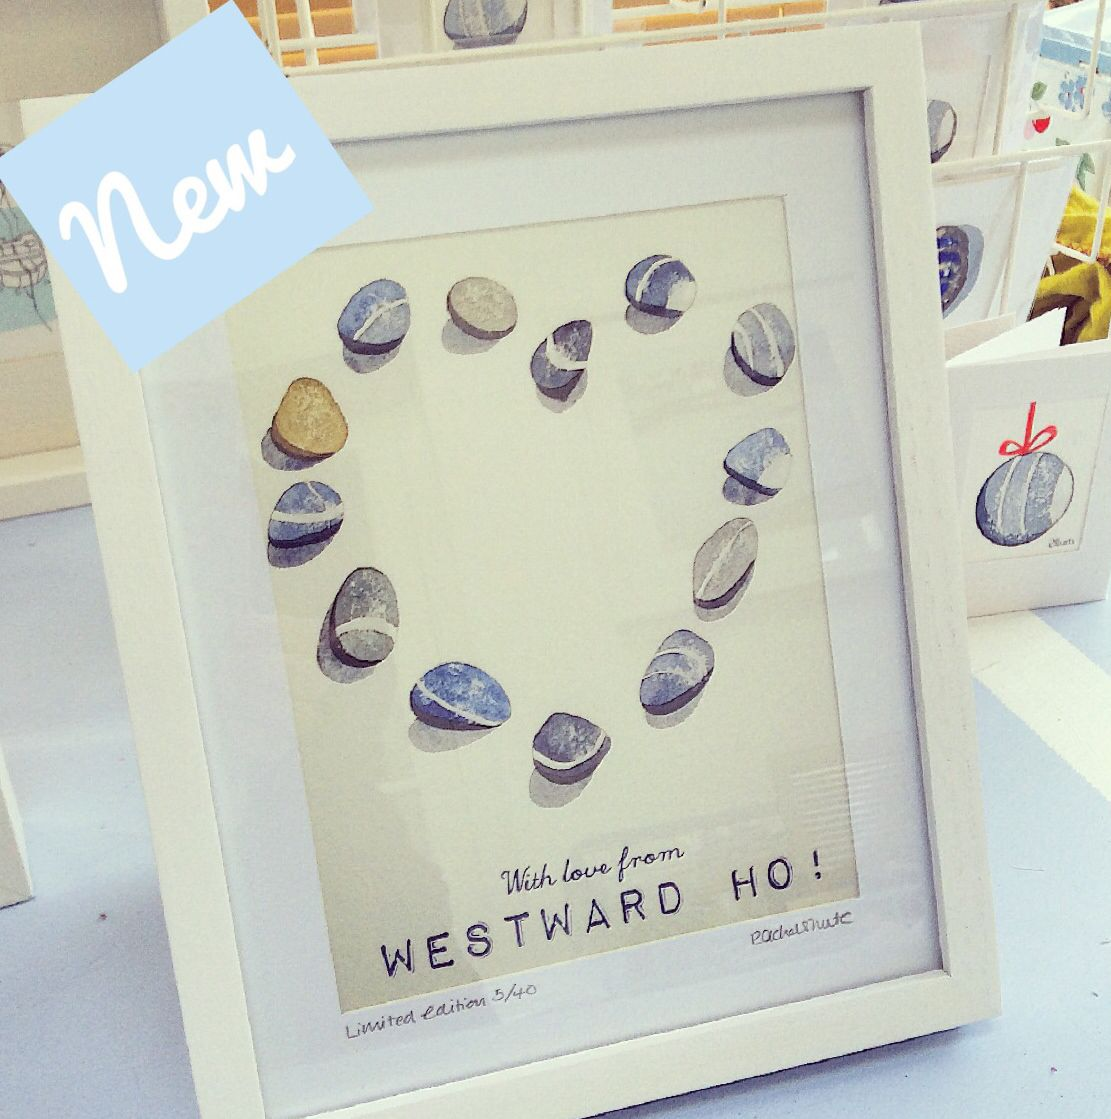 My new limited edition giclee print 'with love from Westward Ho!'  rachelshute3@gmail.com